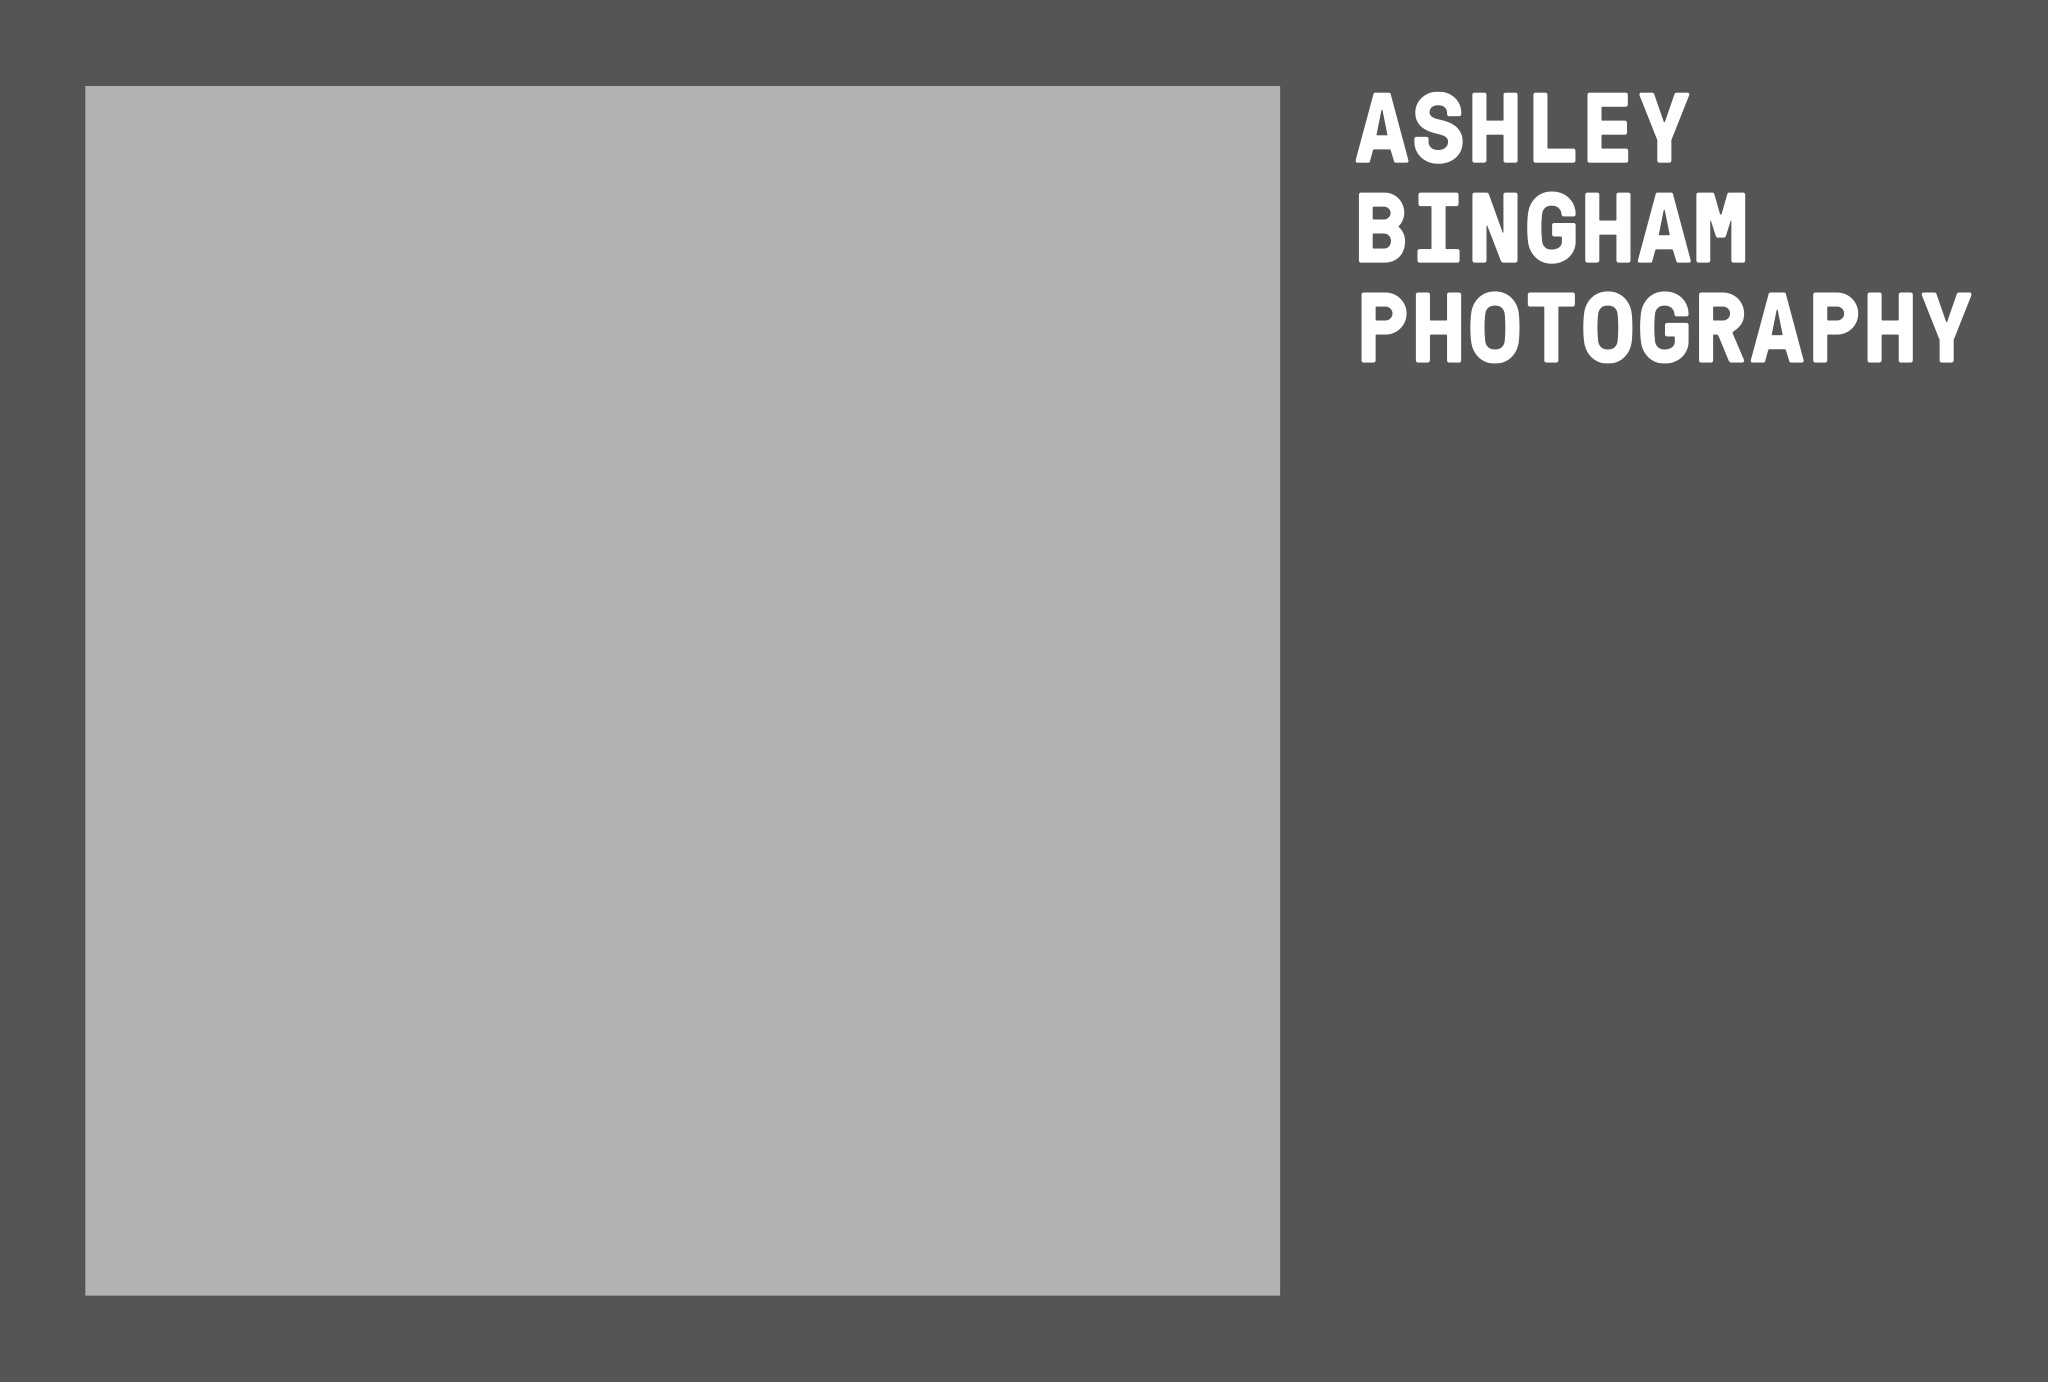 brand identity for 'ASHLEY BINGHAM PHOTOGRAPHY' in light and dark grey